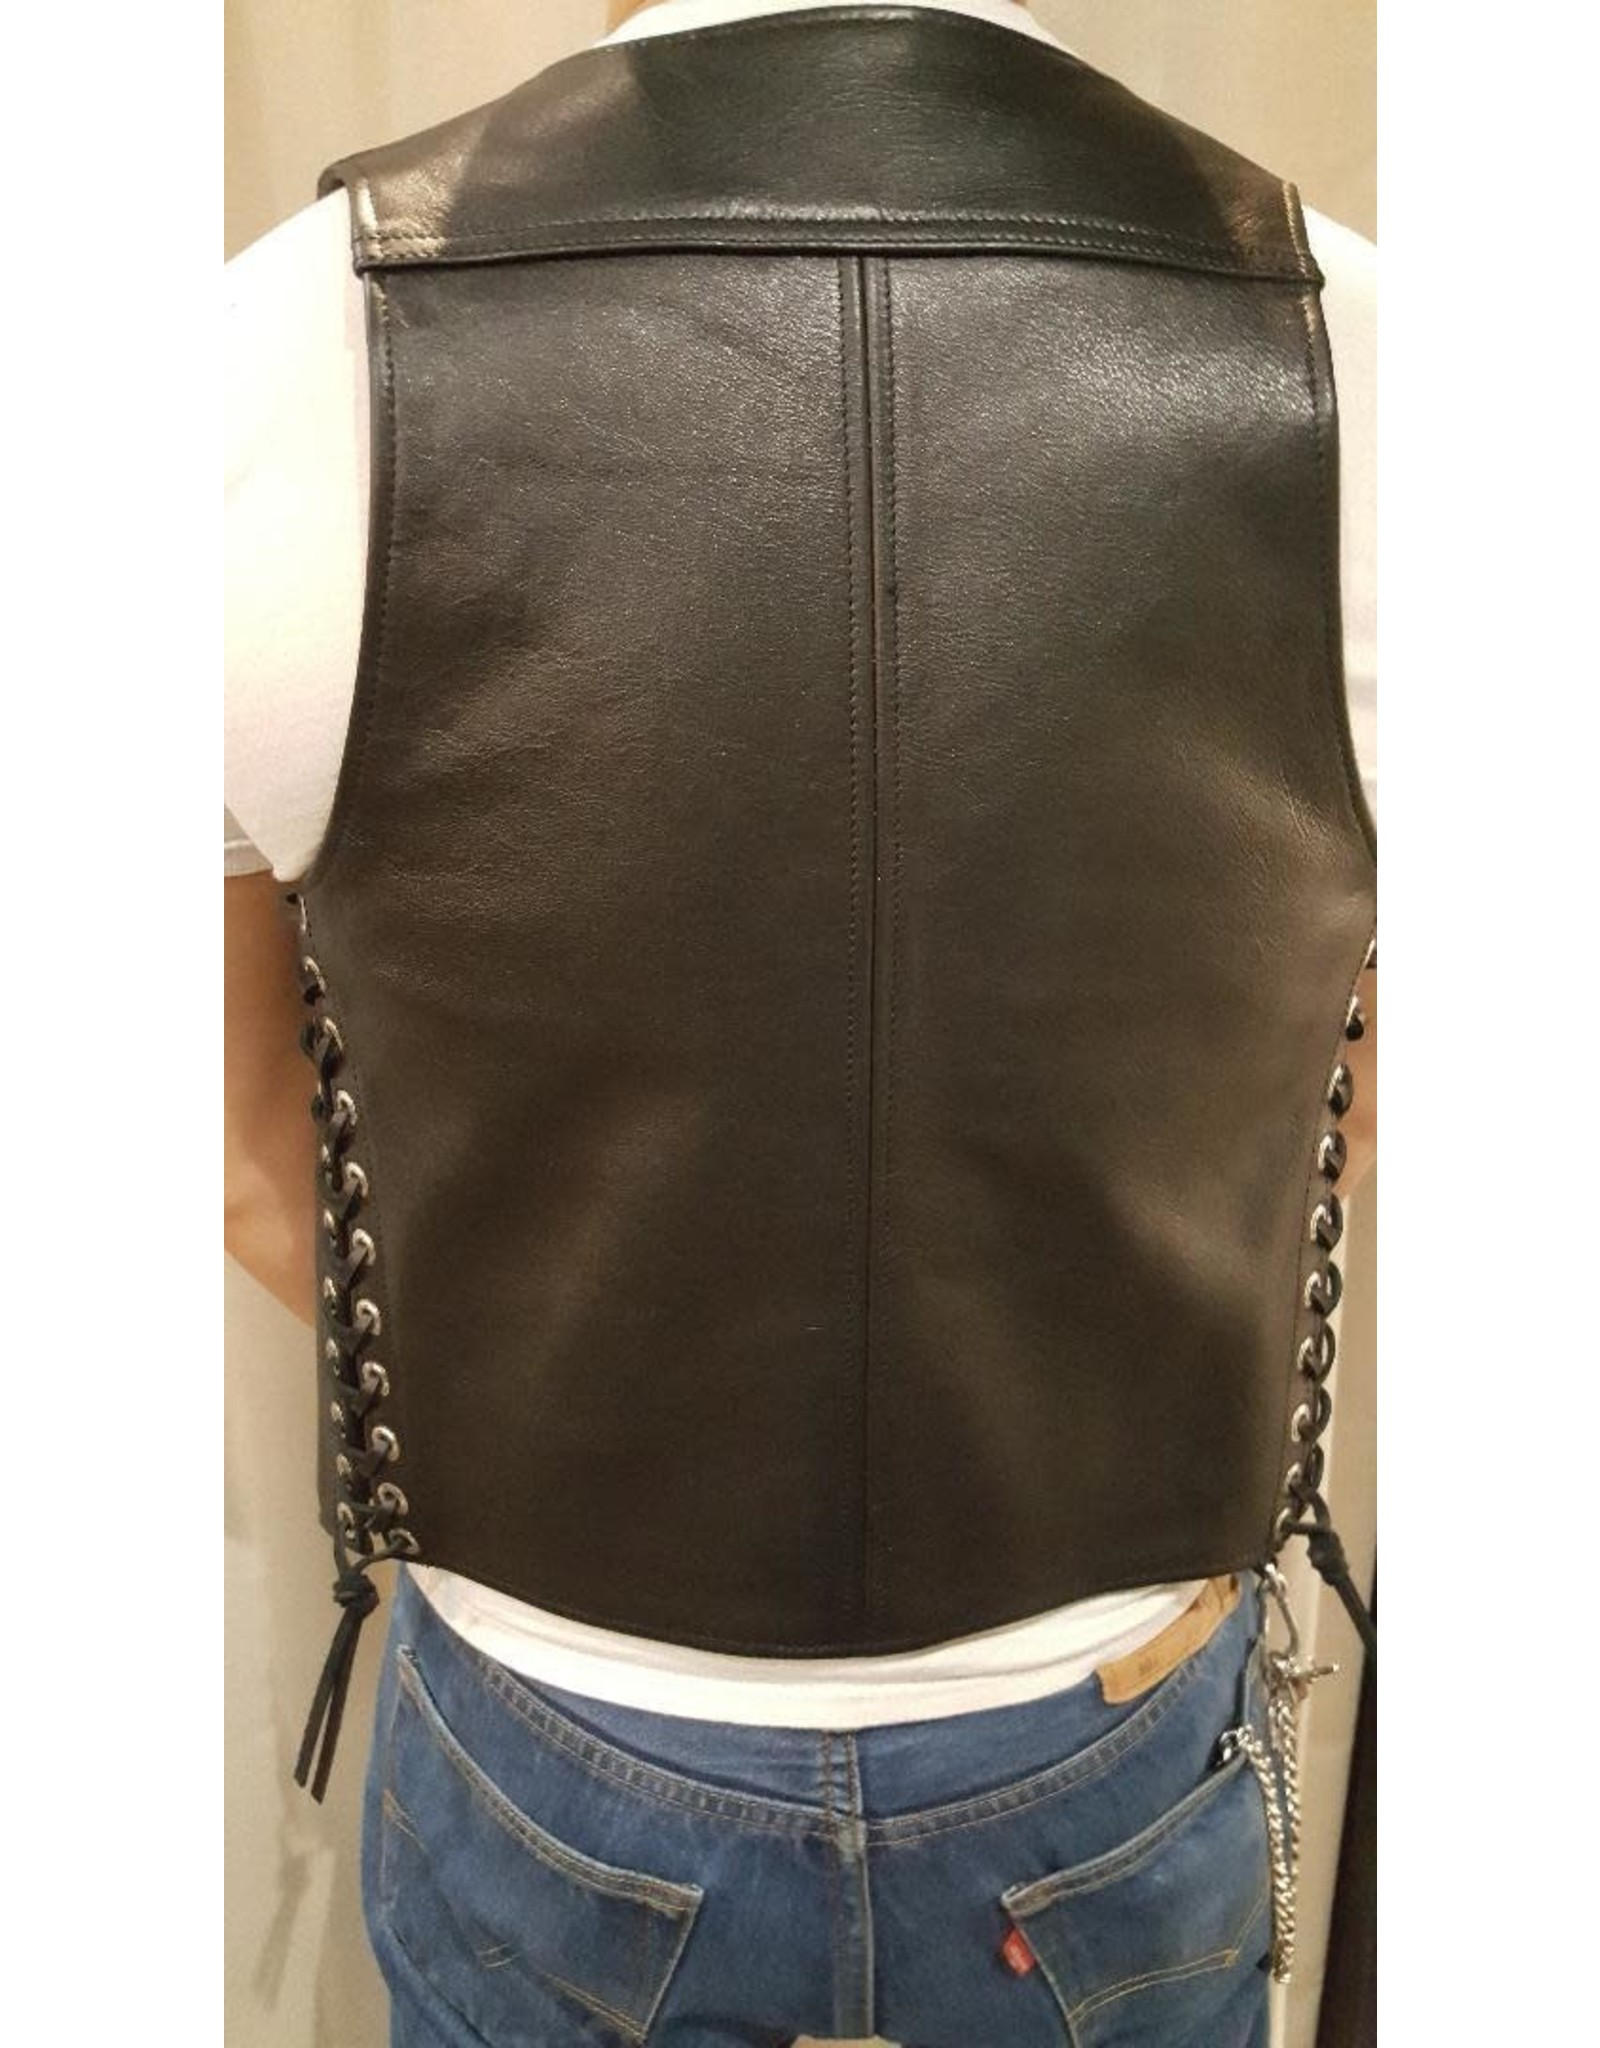 Doghouse Leathers Crafting DH Leathers Bar Vest with Lace Sides